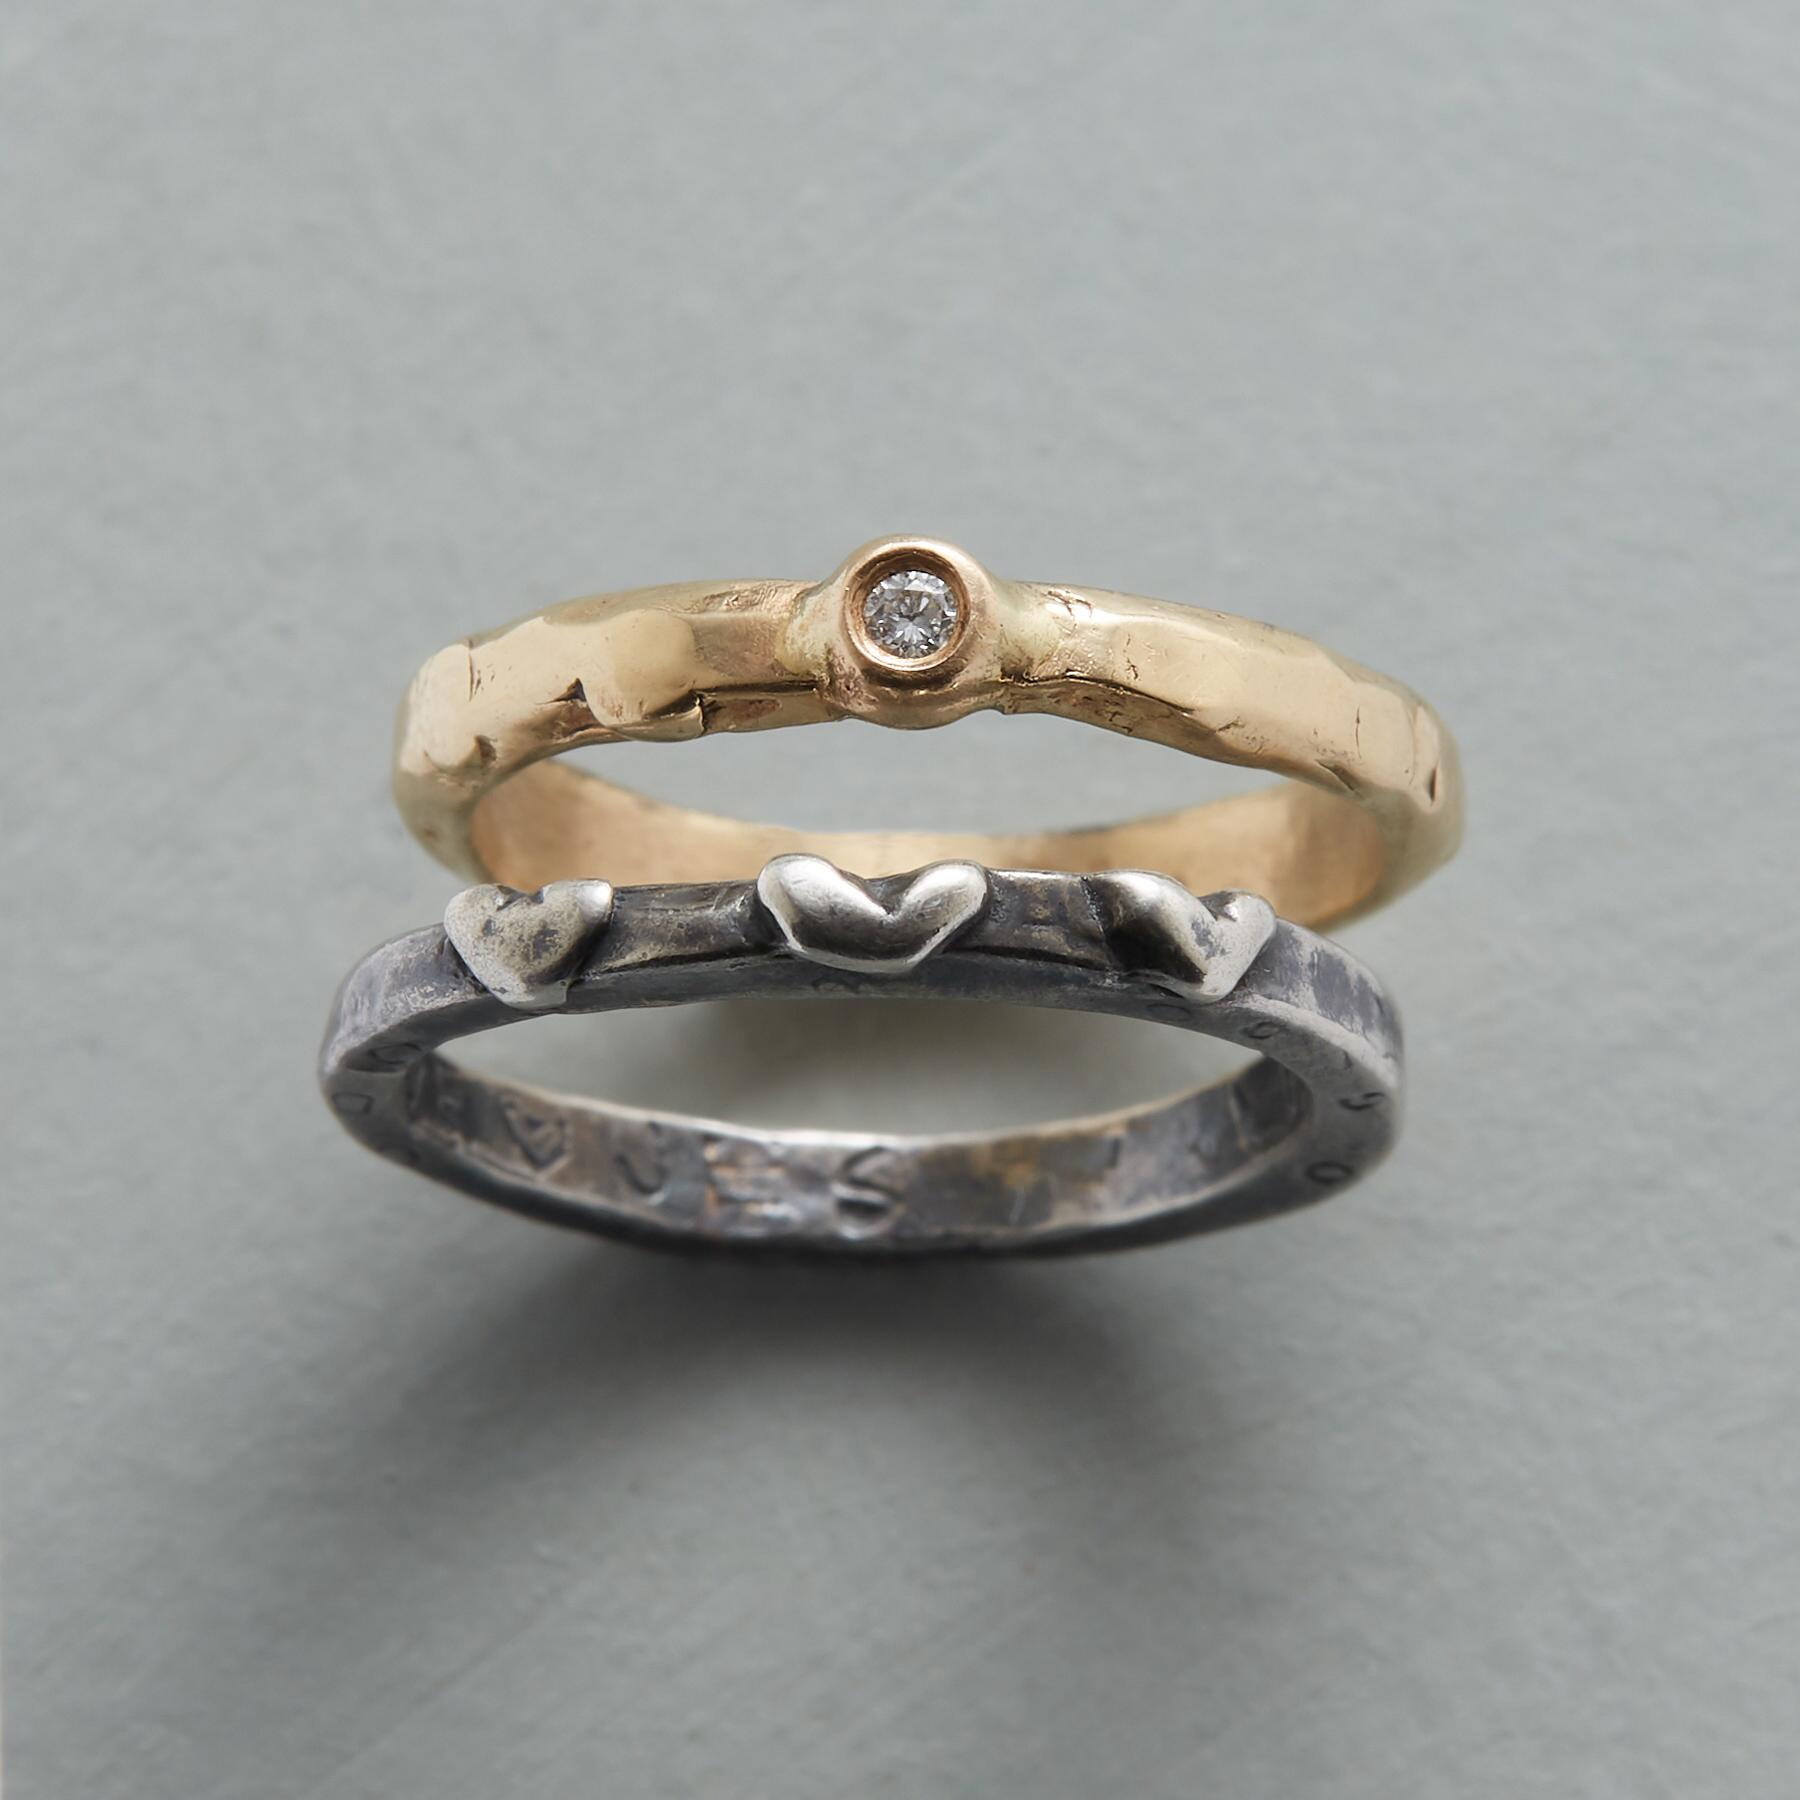 INVINCIBLE LOVE RINGS: View 1